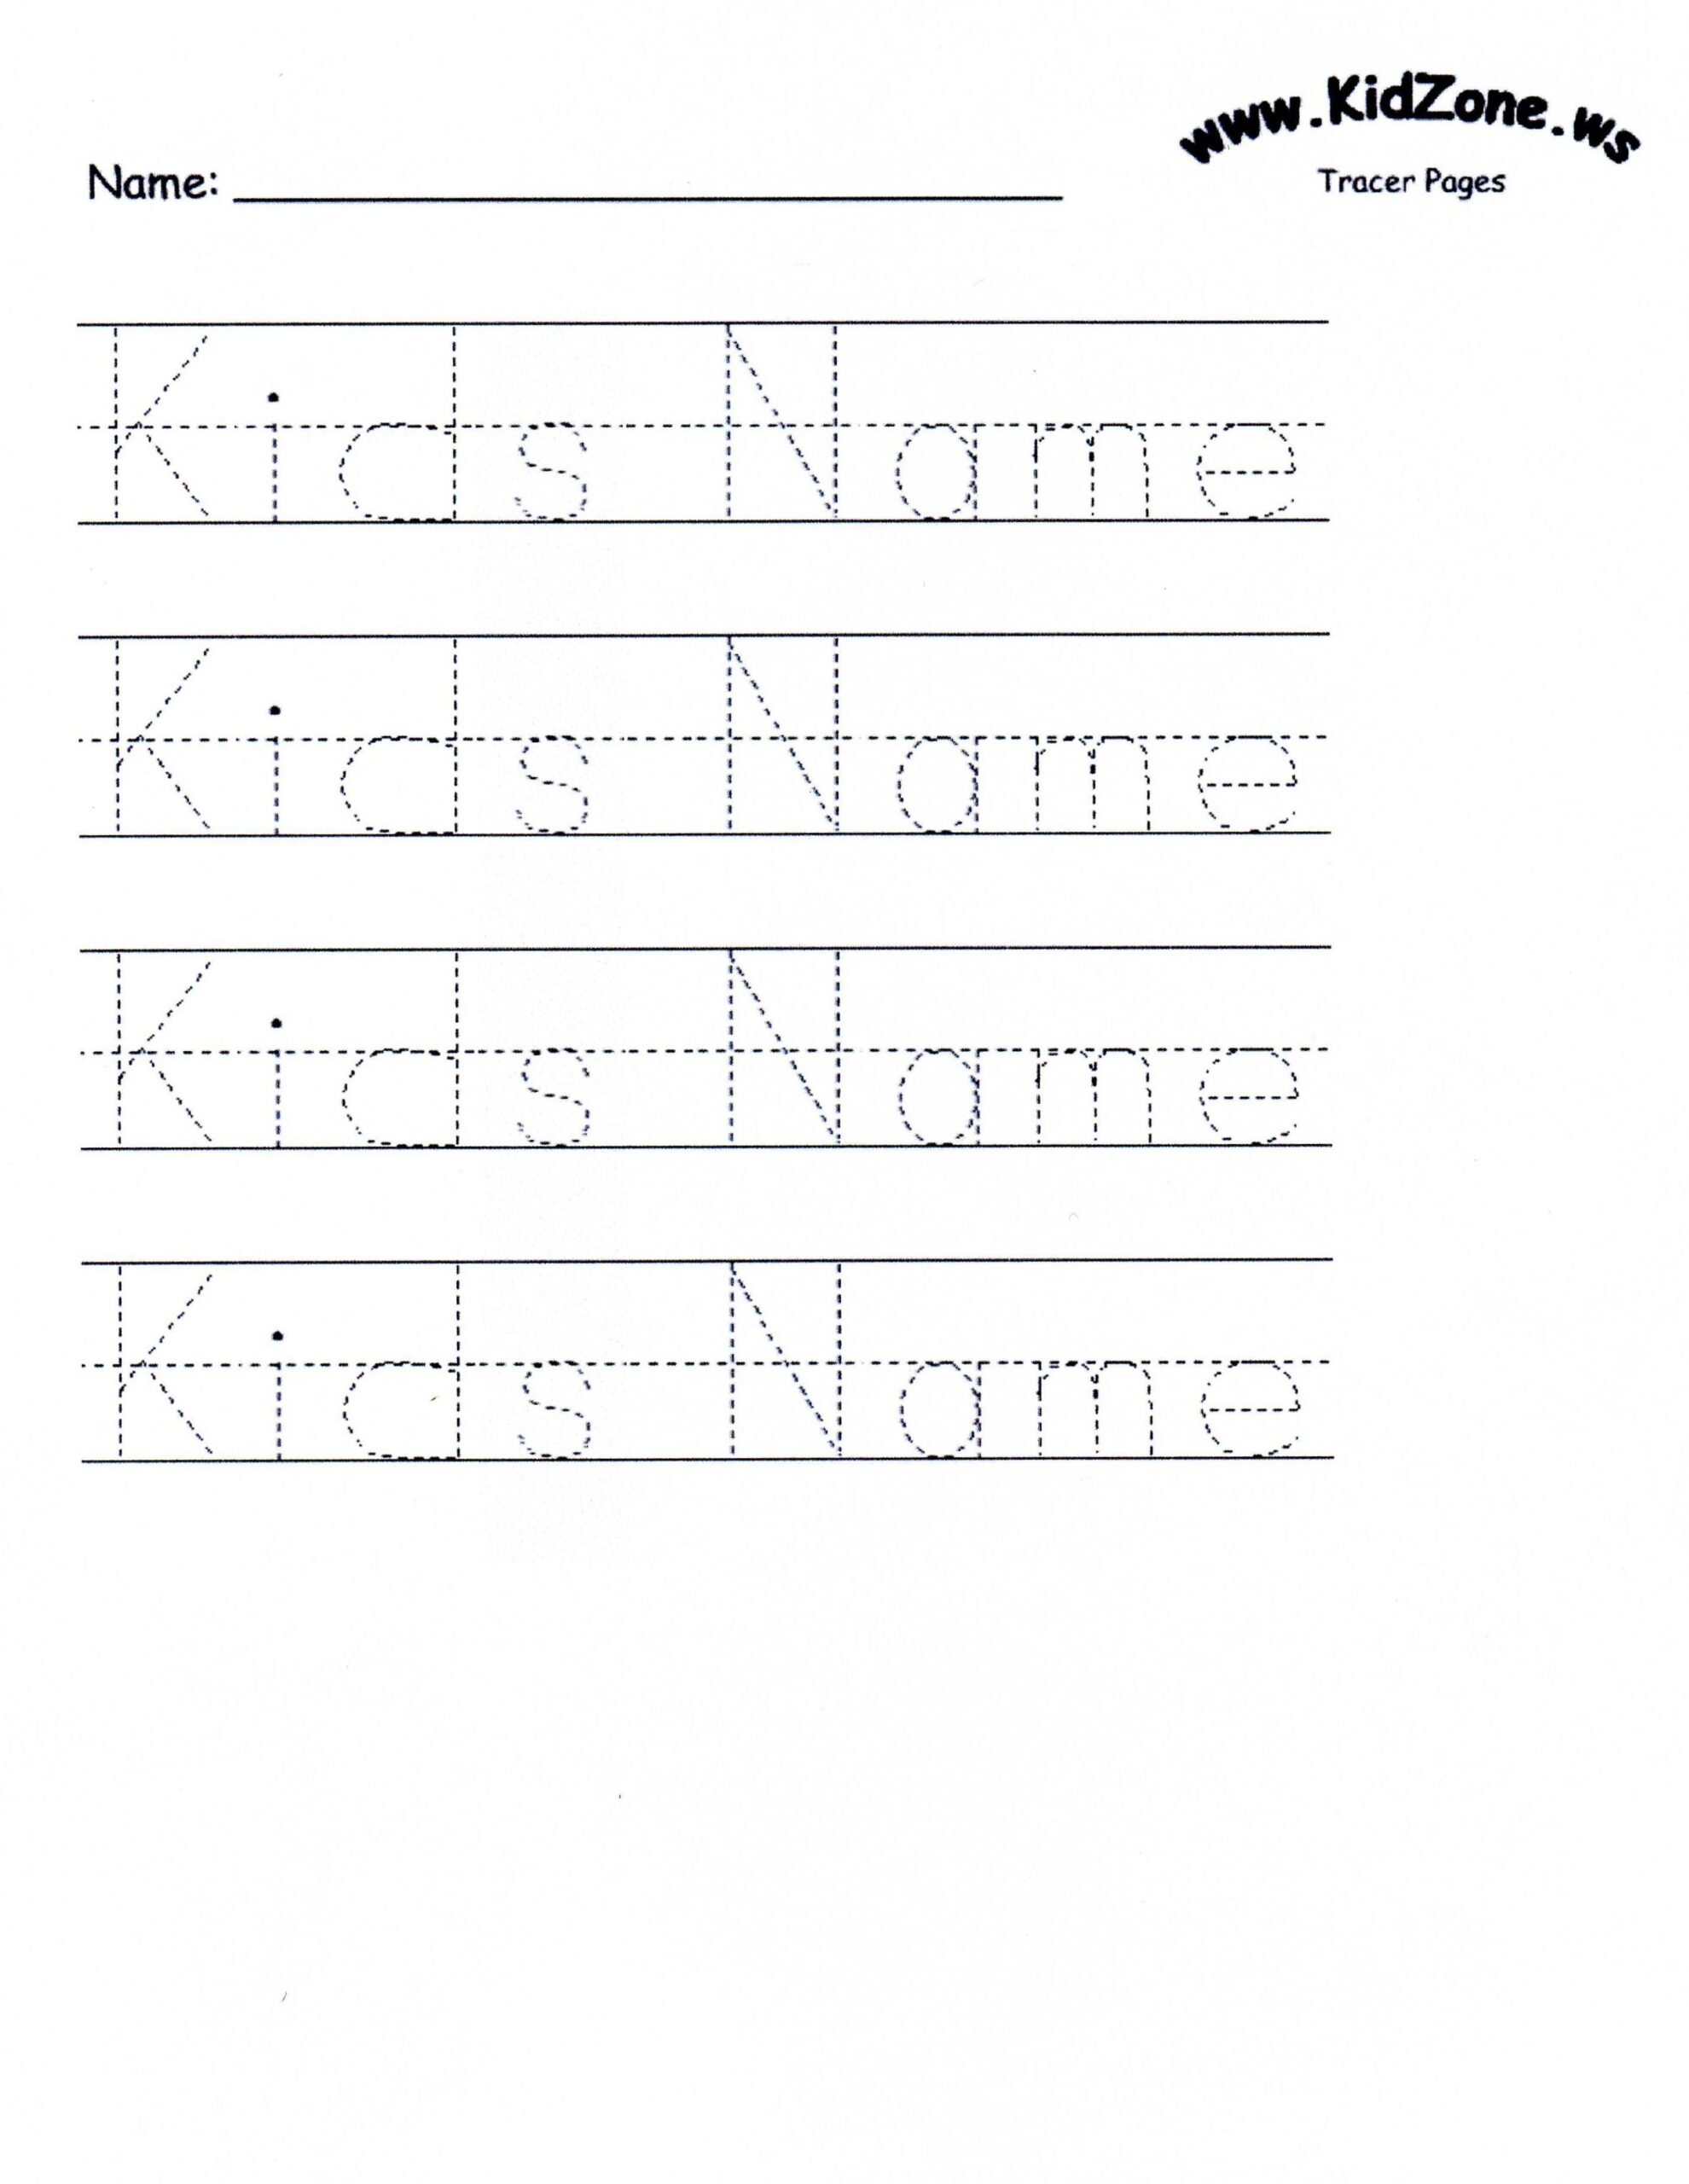 Line Over Number In Math Traceable Name Worksheets Dr Seuss intended for Name Tracing Deped Common